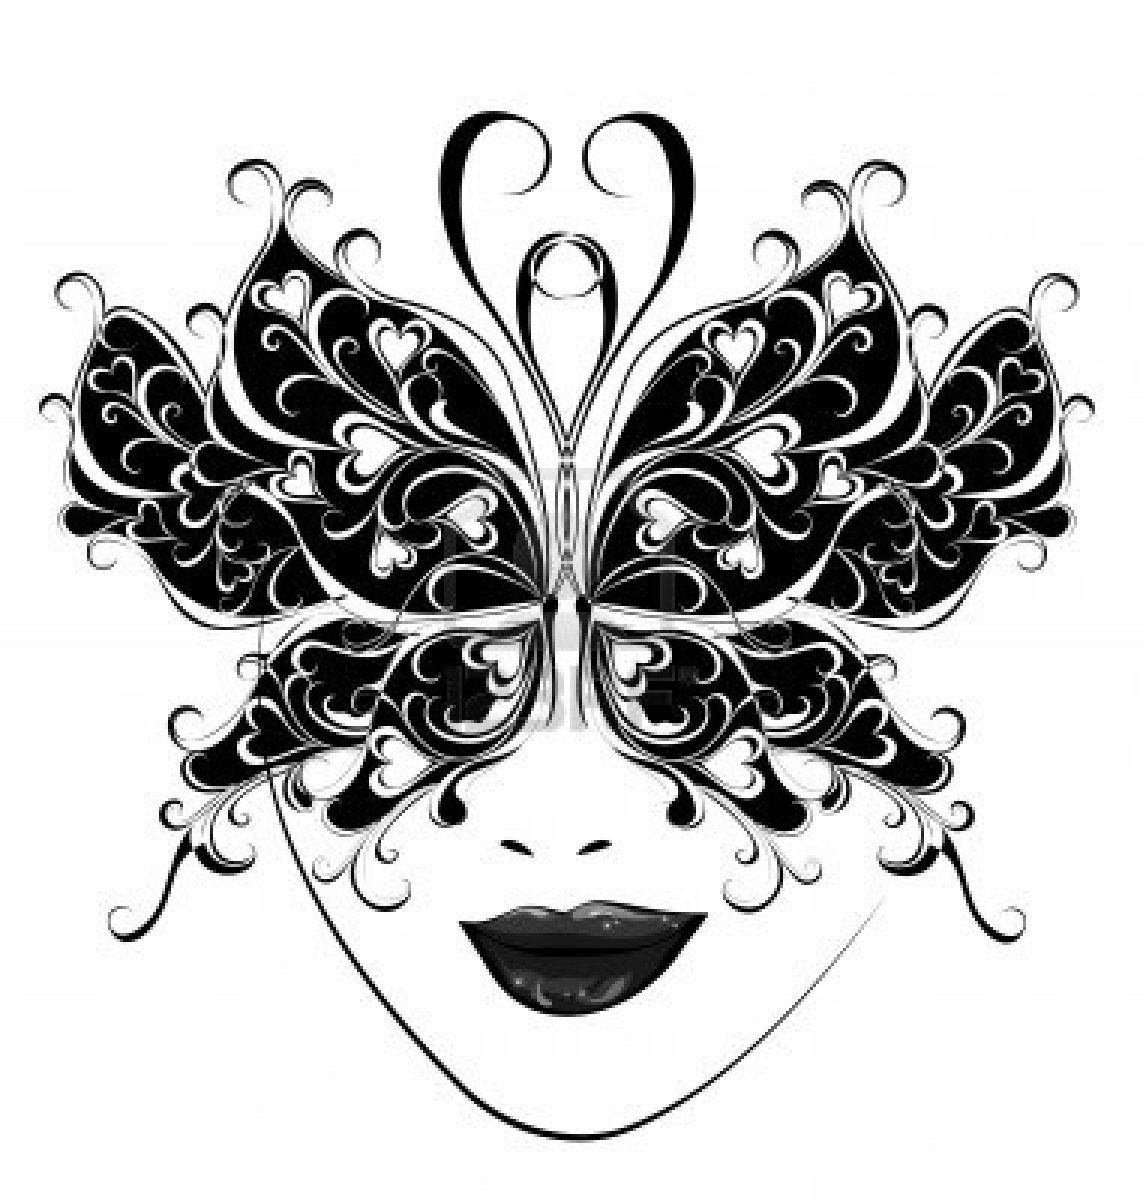 hight resolution of illustration of carnival mask butterfly masks for a masquerade vector art clipart and stock vectors image 16258130